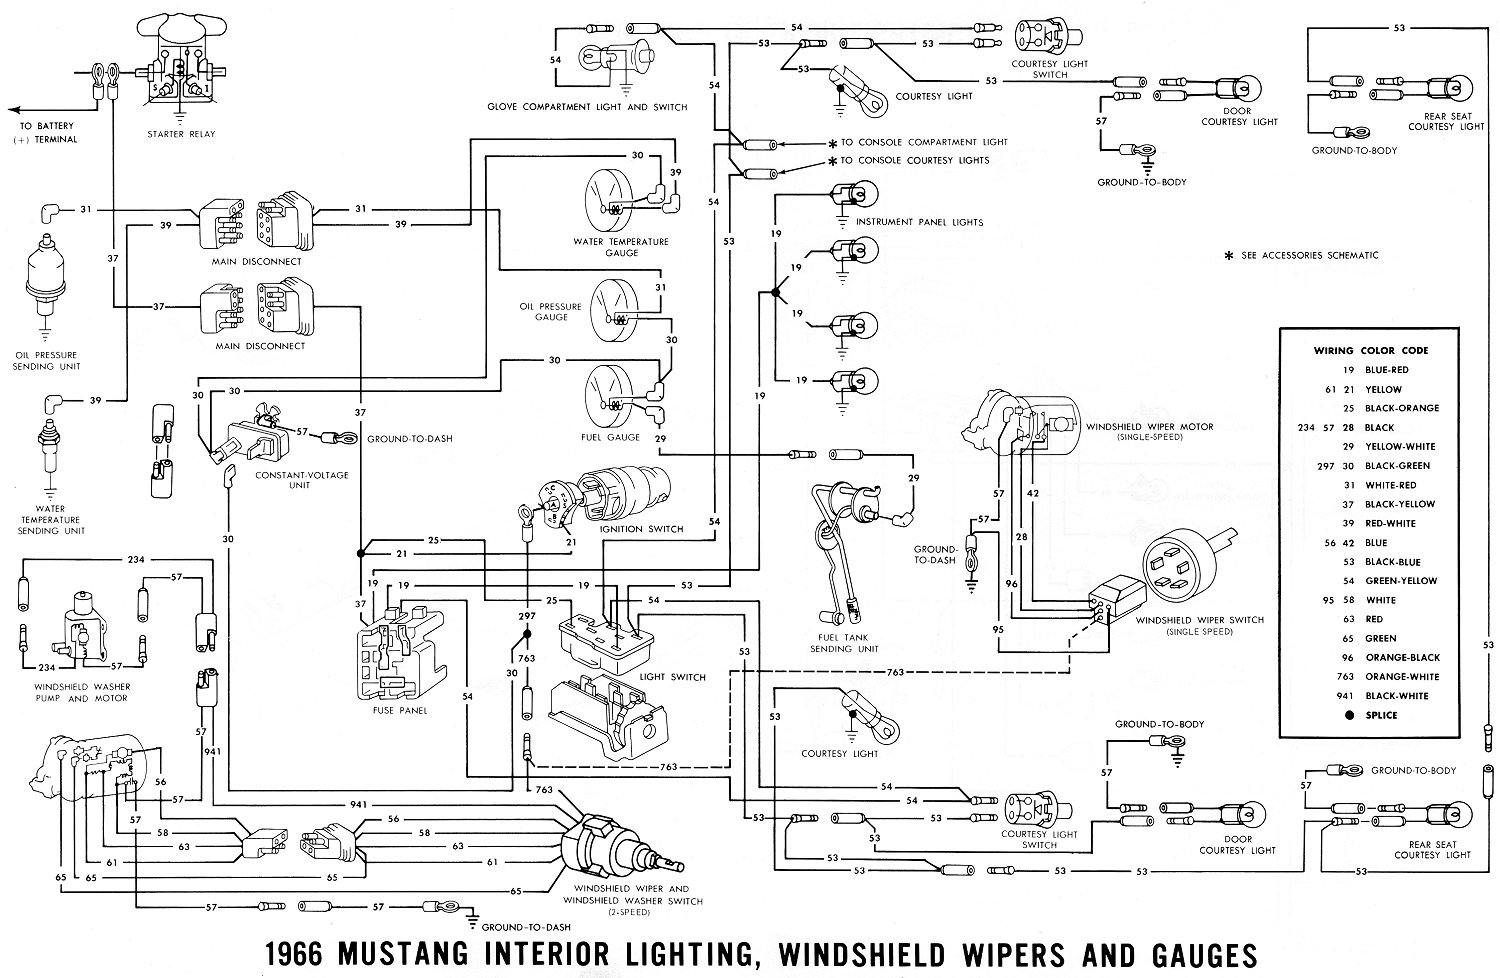 66inter1 66 mustang wiring diagram radio tape 66 mustang turn signal wiring 1971 mustang fuse box diagram at mr168.co